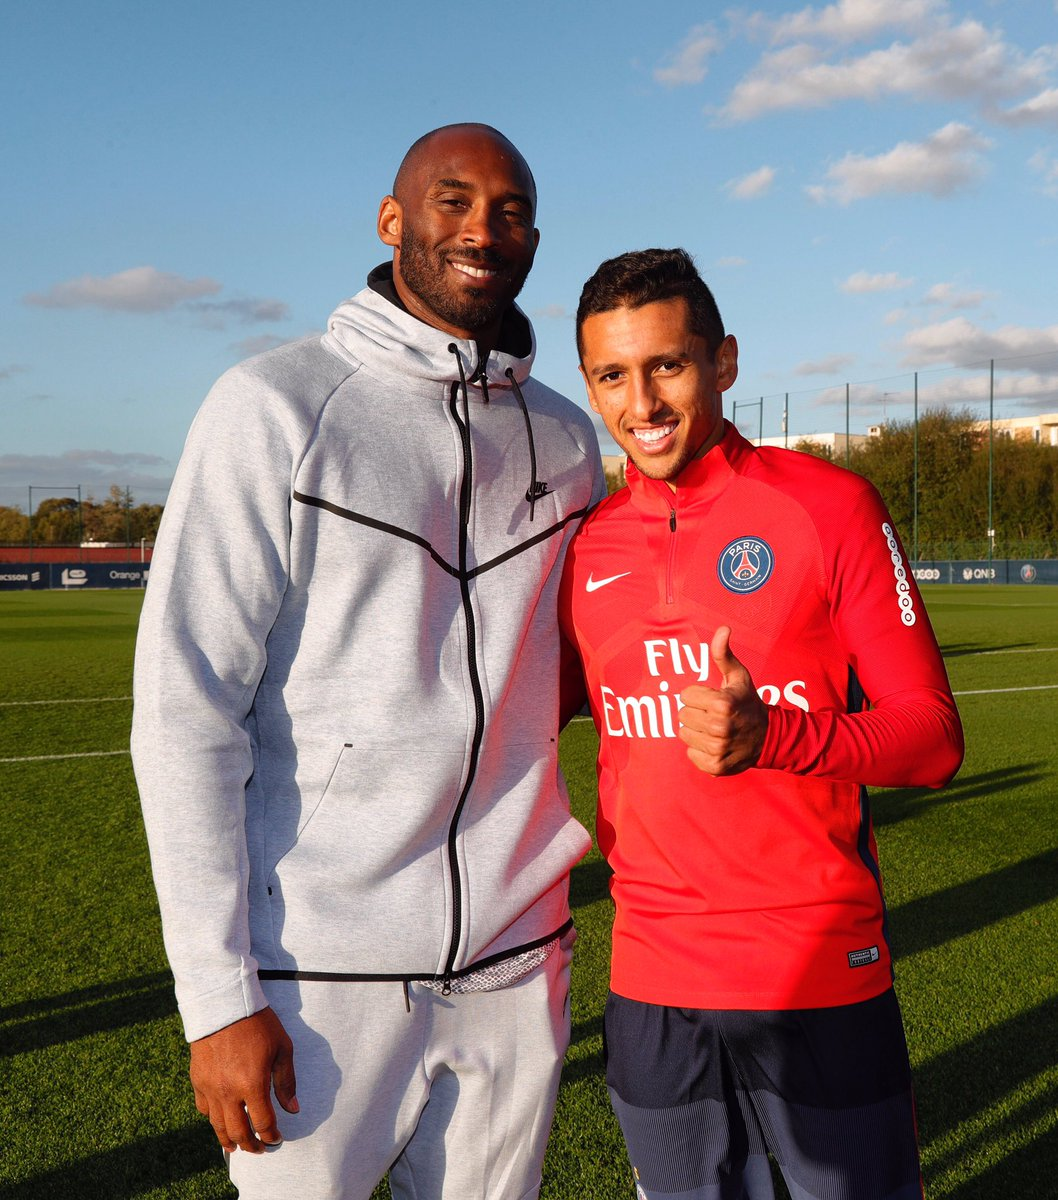 Thank you for the visit today, LEGEND @kobebryant 🏀 #IciCestParis